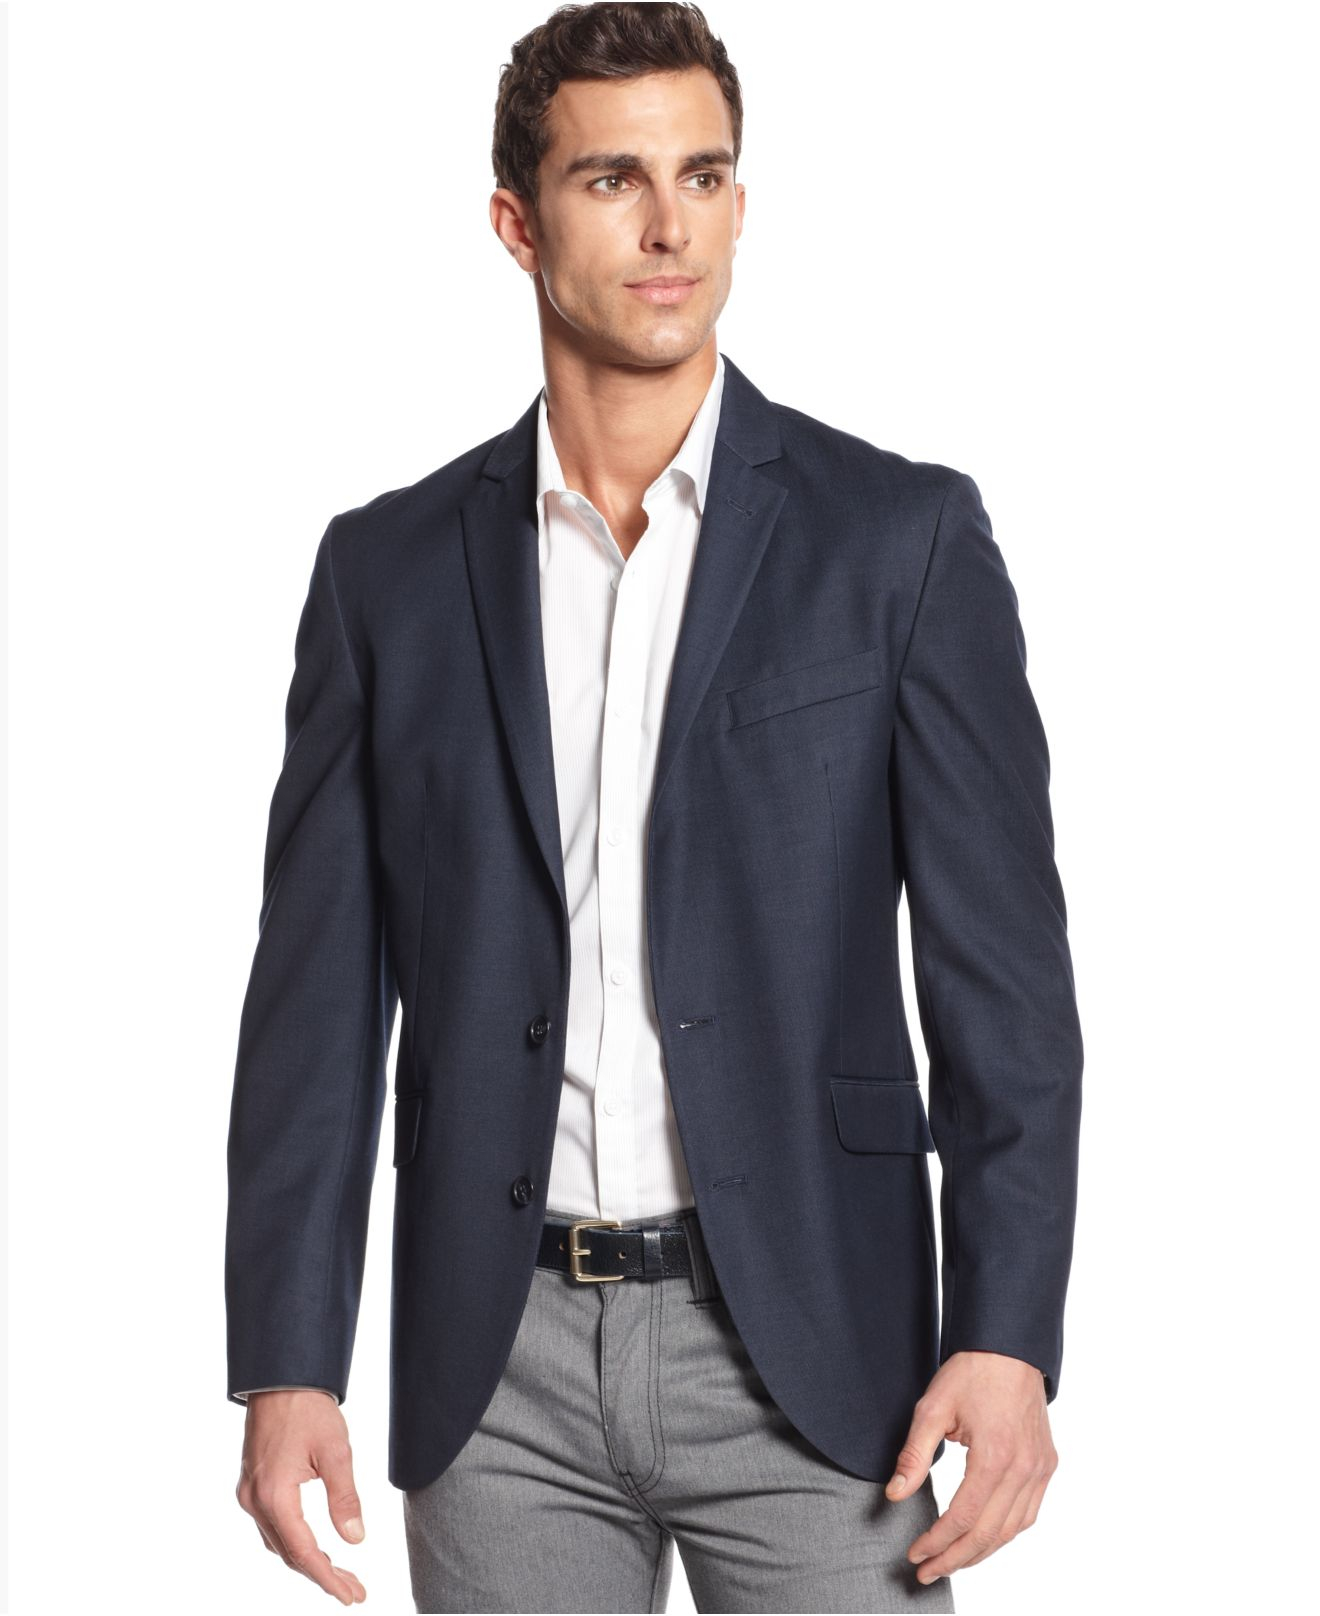 Men's Sport Coats & Blazers Upgrade your look with smart and elegant designer sport coats and blazers from Neiman Marcus. The collection features a large selection of the best men's blazers and sport coats in trending styles.